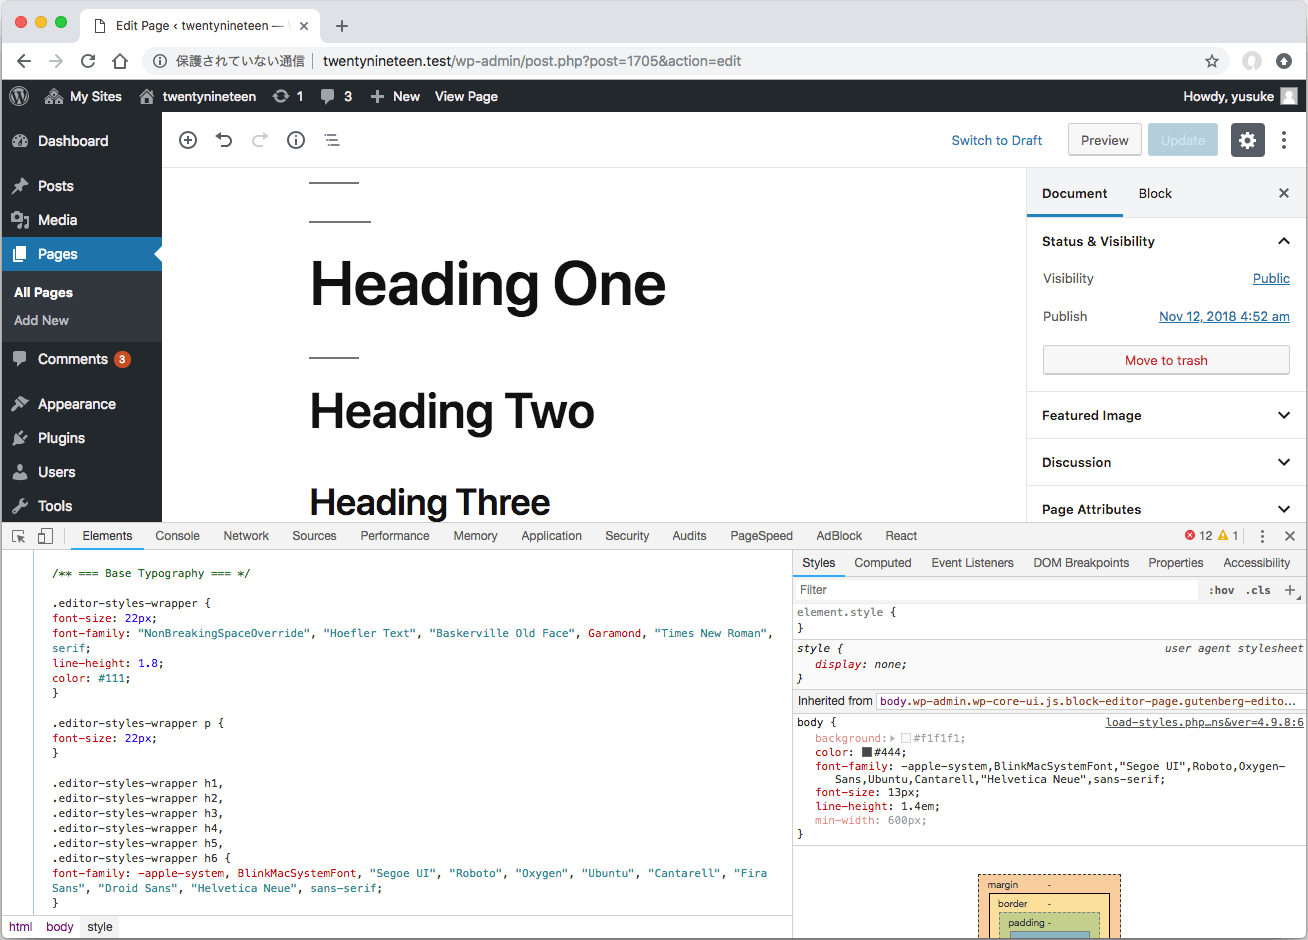 gutenberg-editor-style3.png